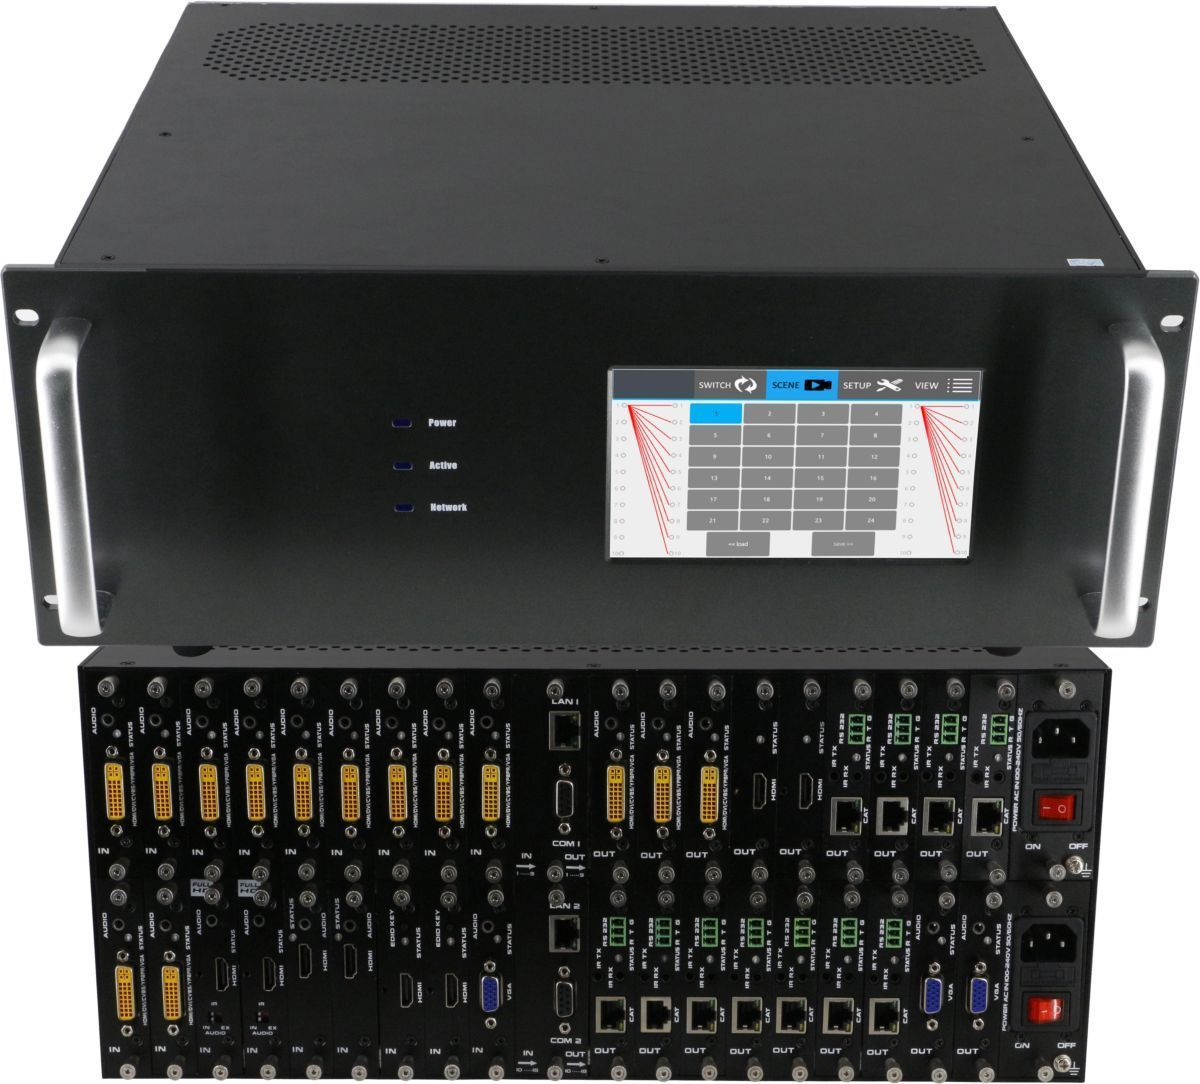 4K 17x17 HDMI Matrix Switcher with Color Touchscreen